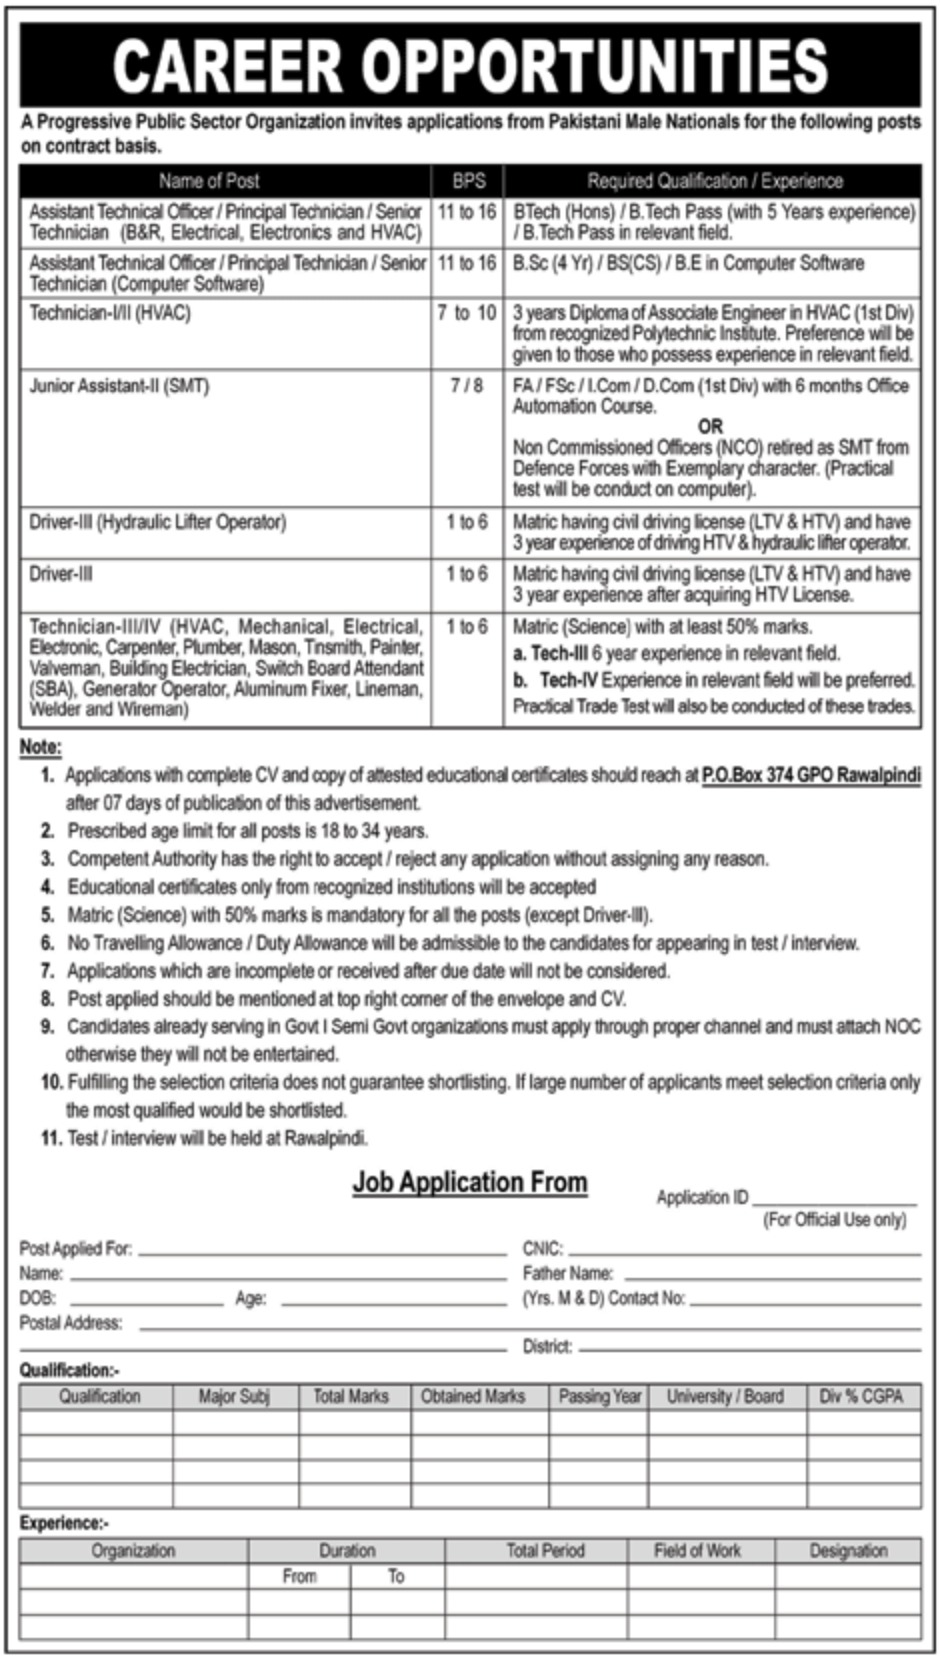 P.O.Box 374 GPO Rawalpindi Latest Jobs 2018